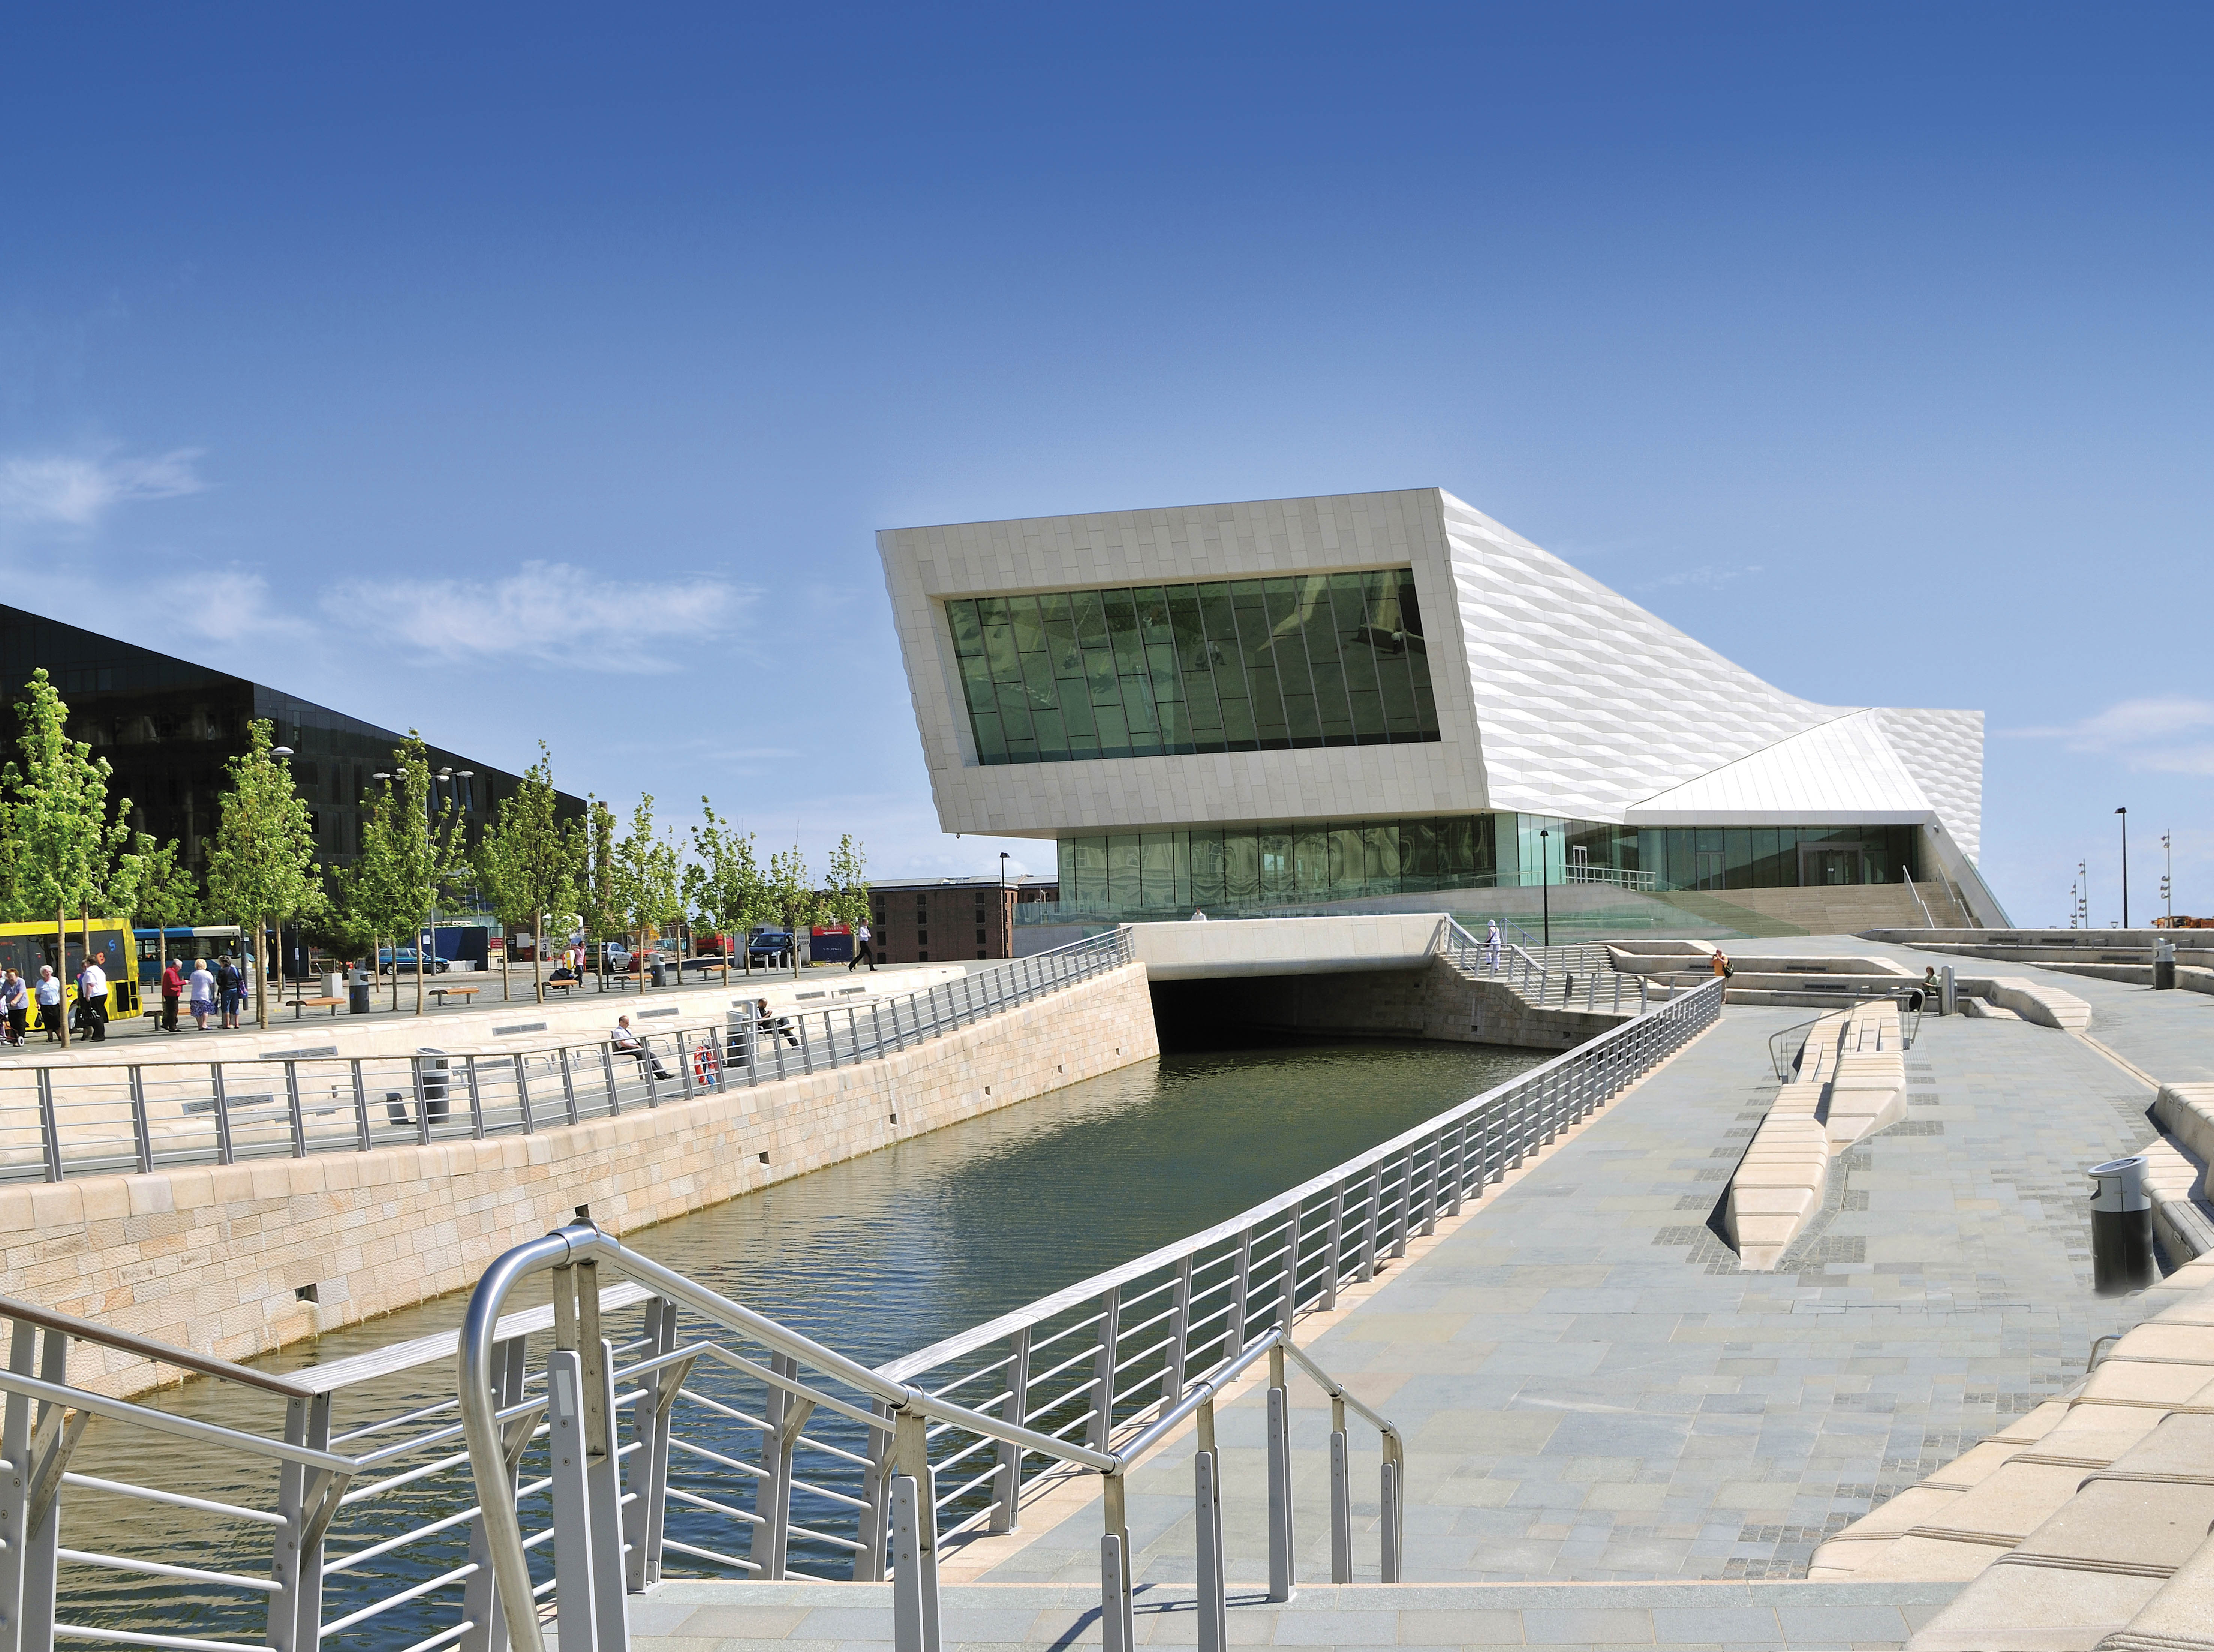 Museum of Liverpool Liverpool, Art imitating the pool of life | Liverpool Love